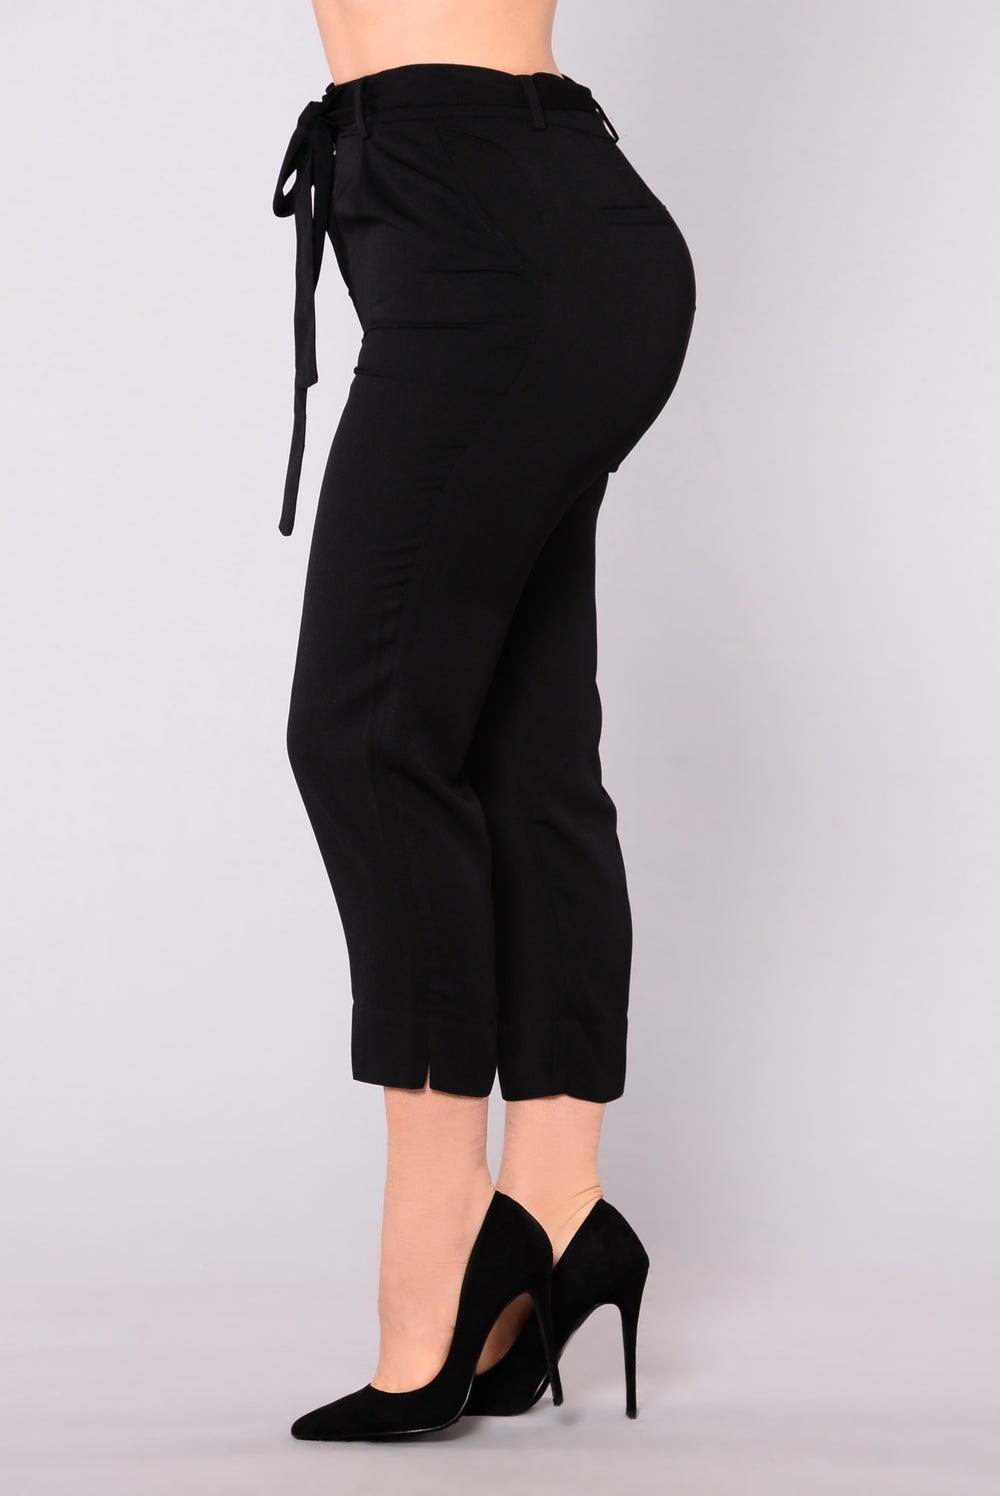 Set It Off Capri Pants - Black